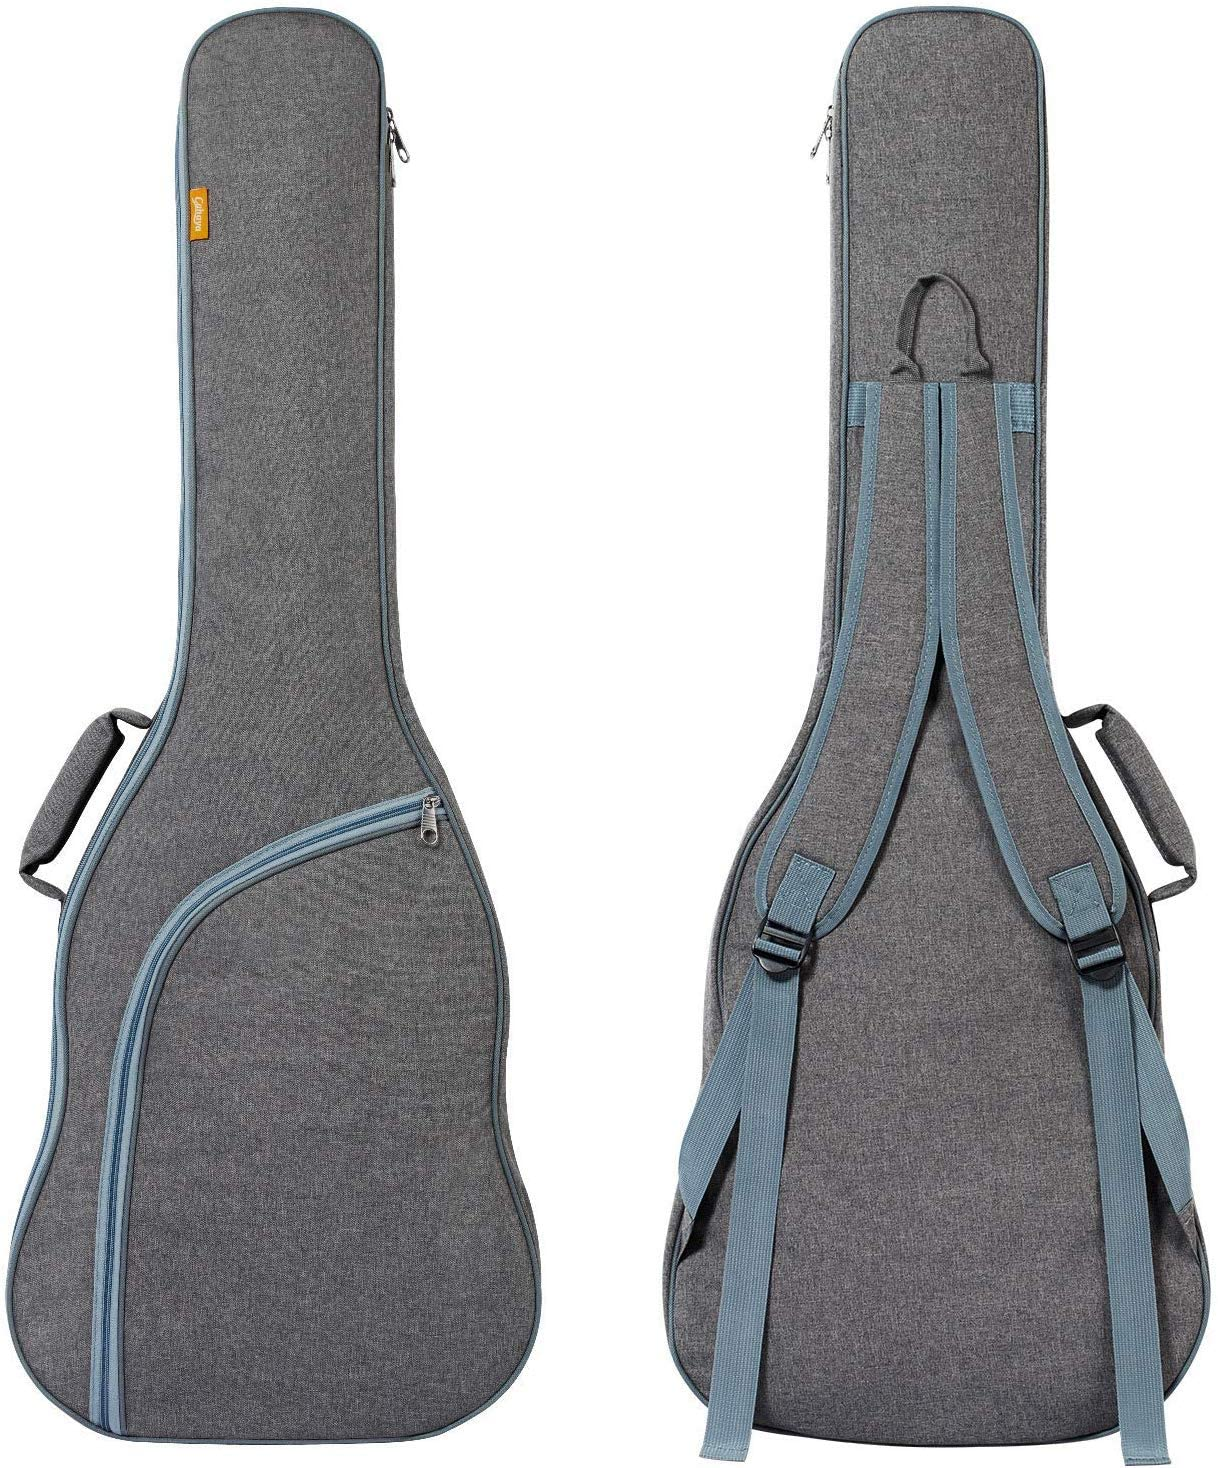 CAHAYA Electric Guitar Bag - Protective Guitar Cases